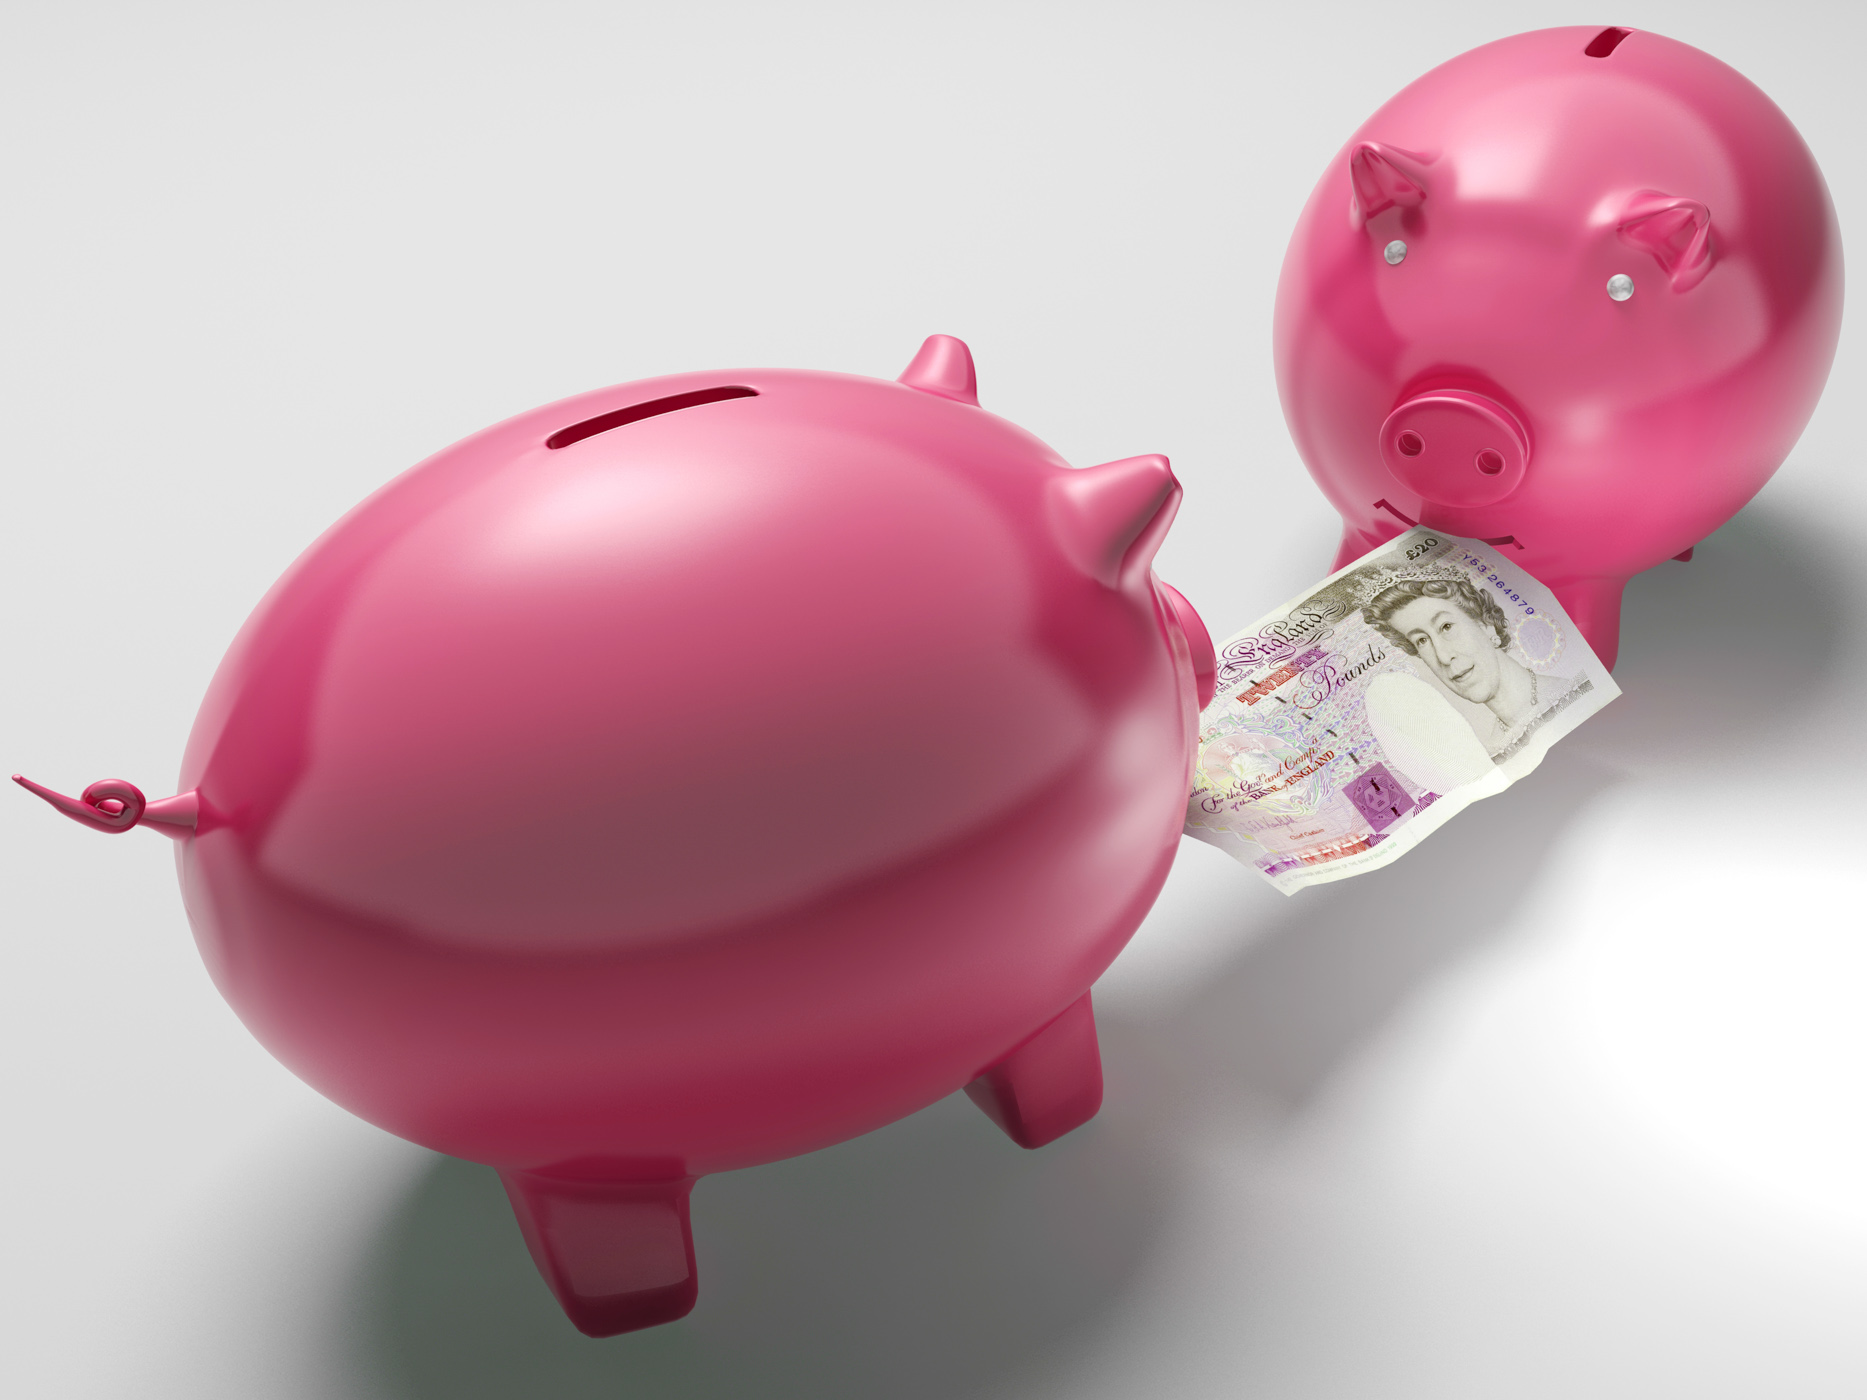 Piggybanks fighting over money shows investment decisions photo